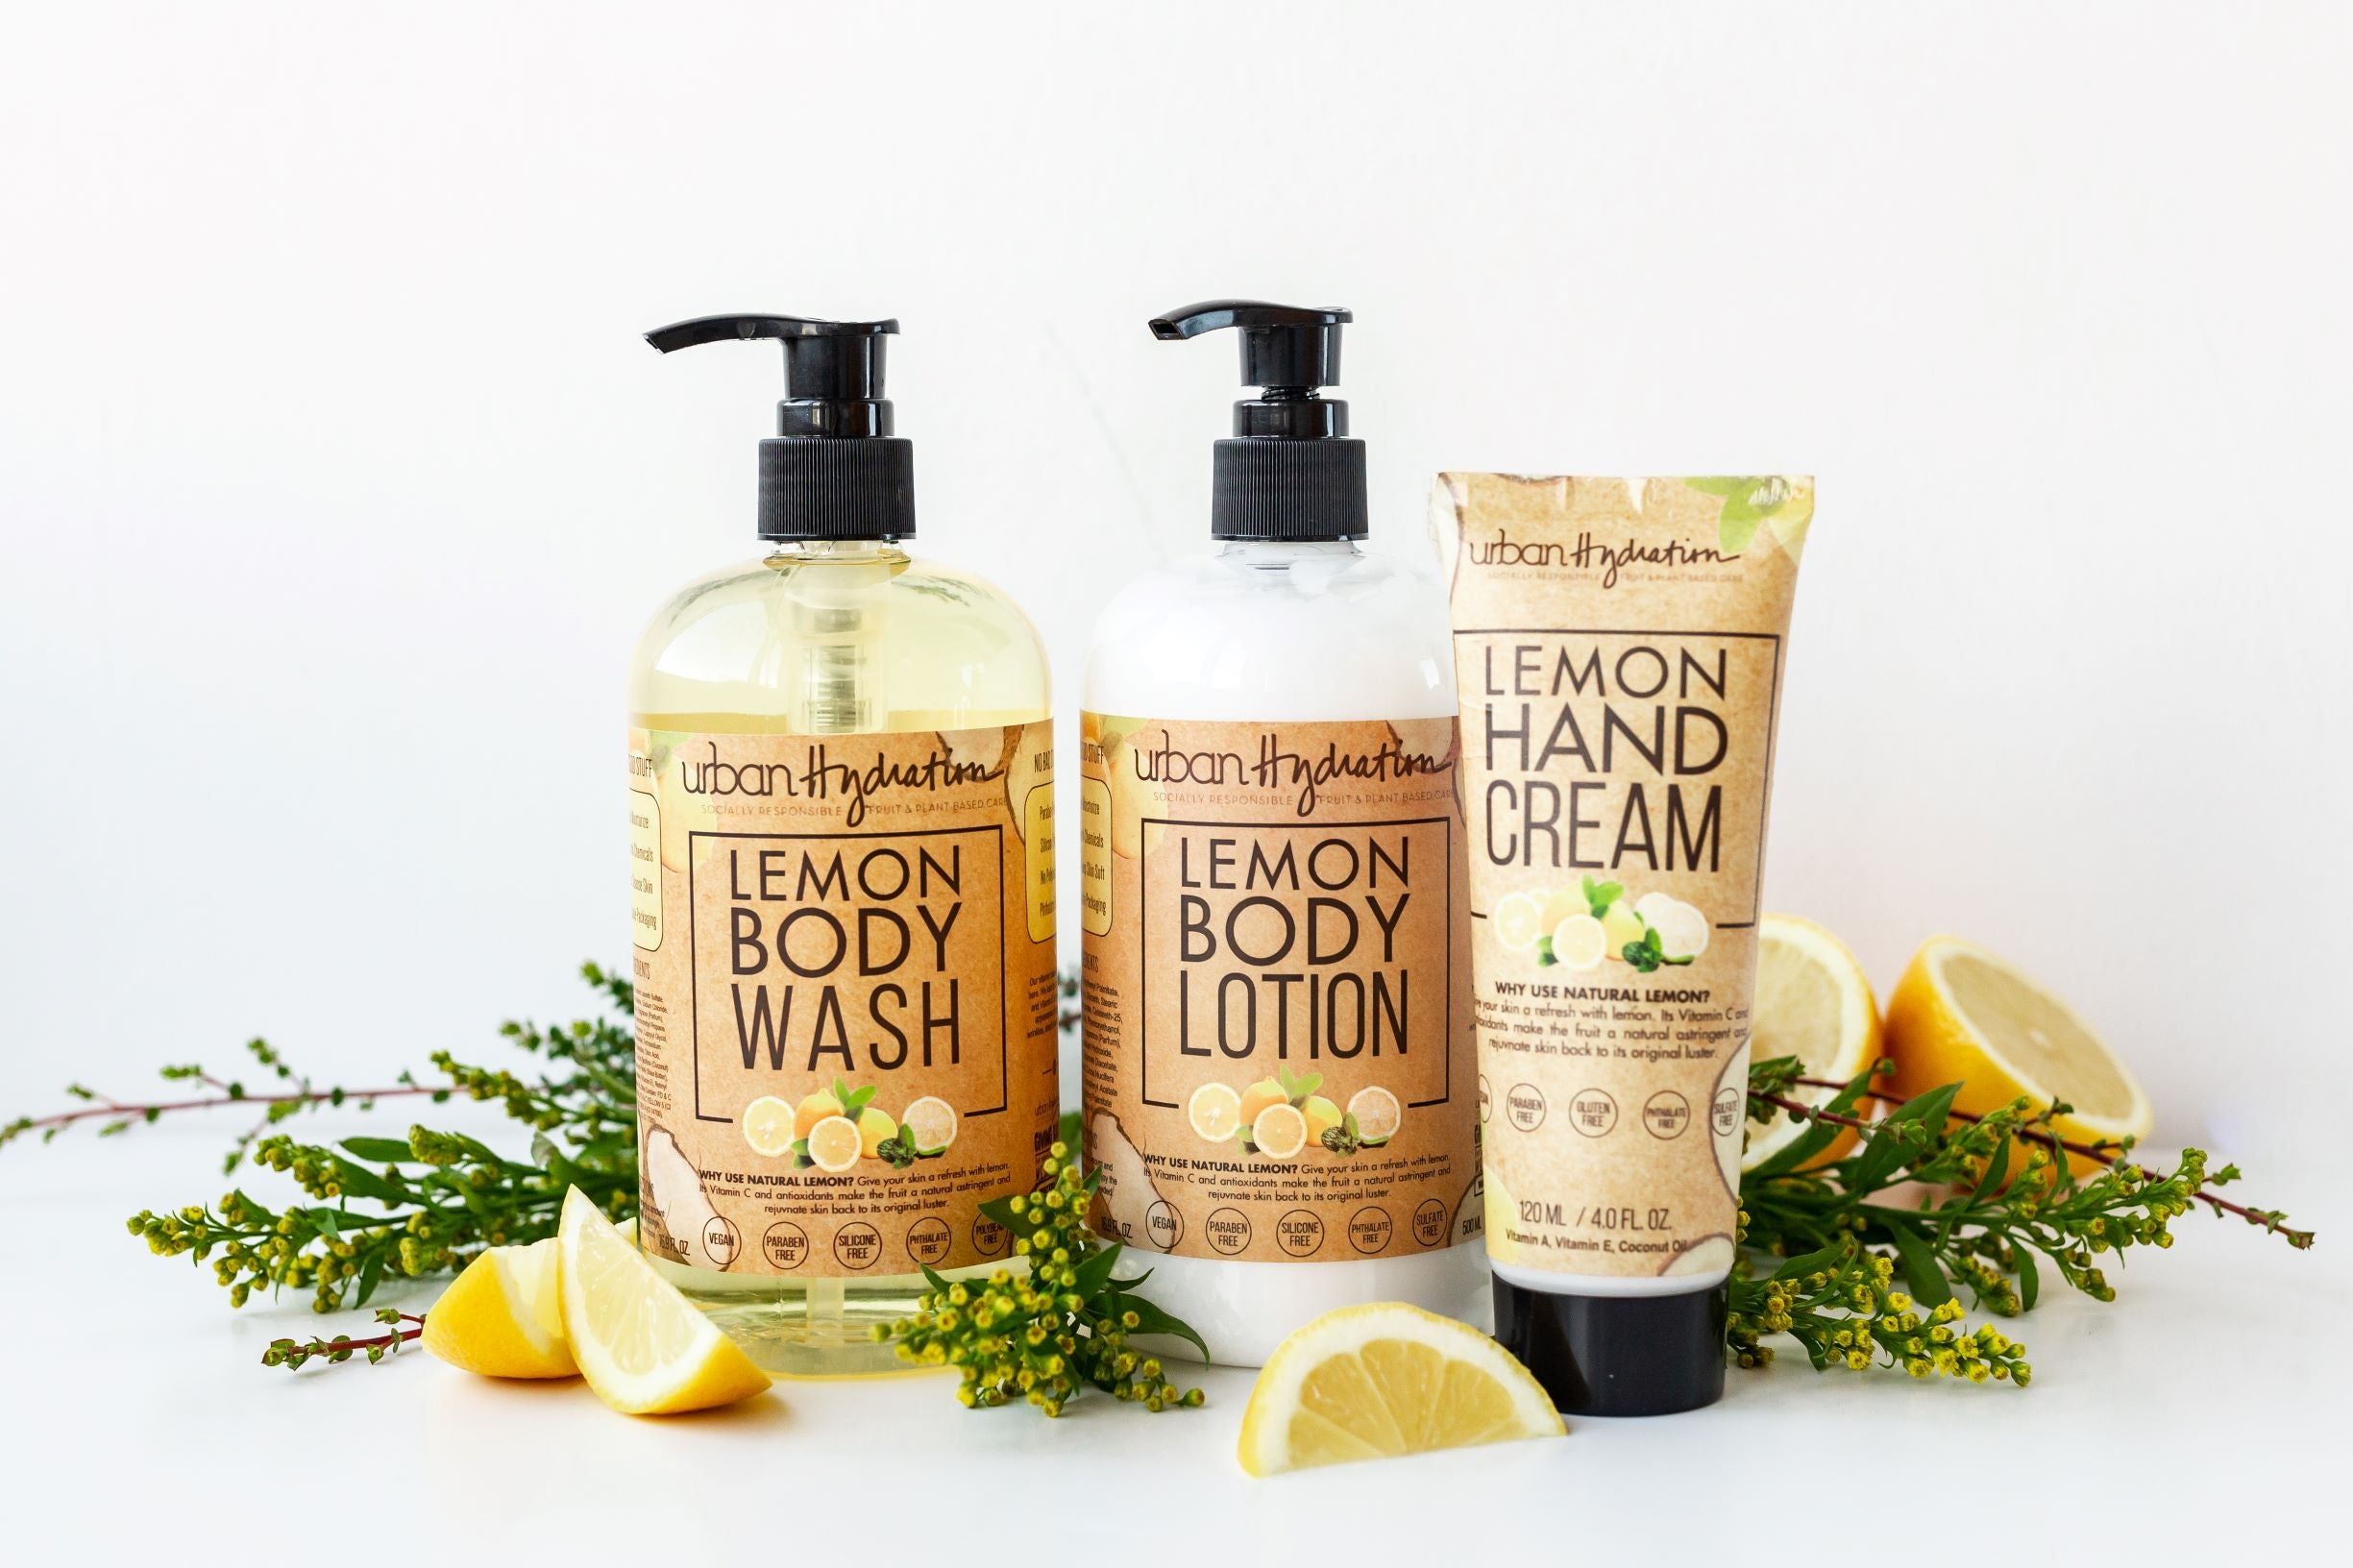 Lemon Body Wash